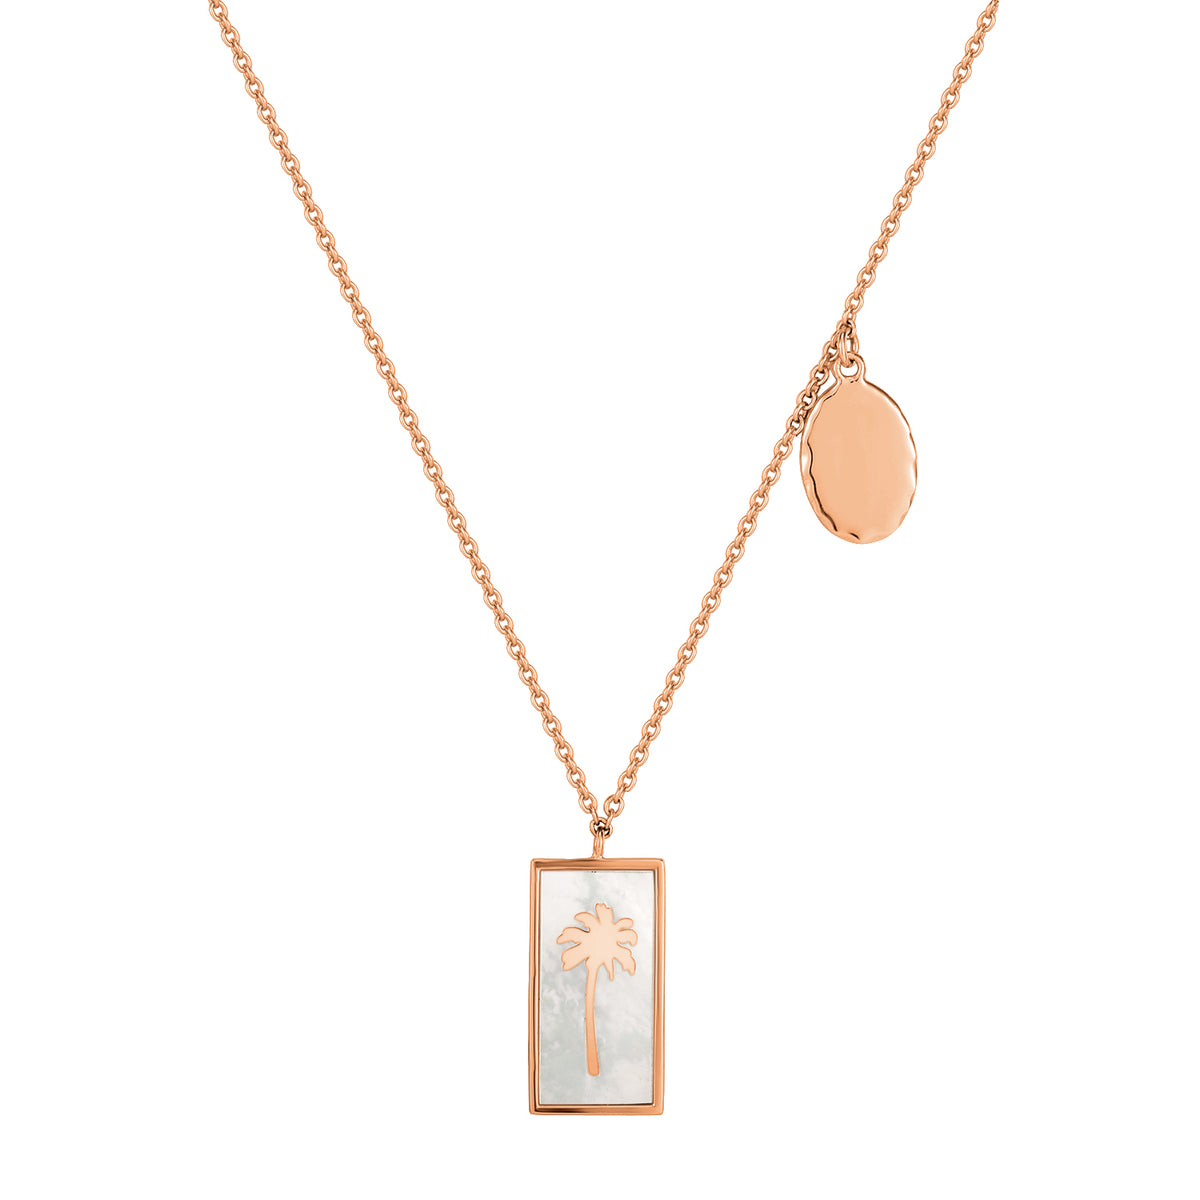 Spirito Rosa X Queen Dina Summer | Sunny Necklace | 925 Silver | Mother of Pearl | Rose Gold Plated